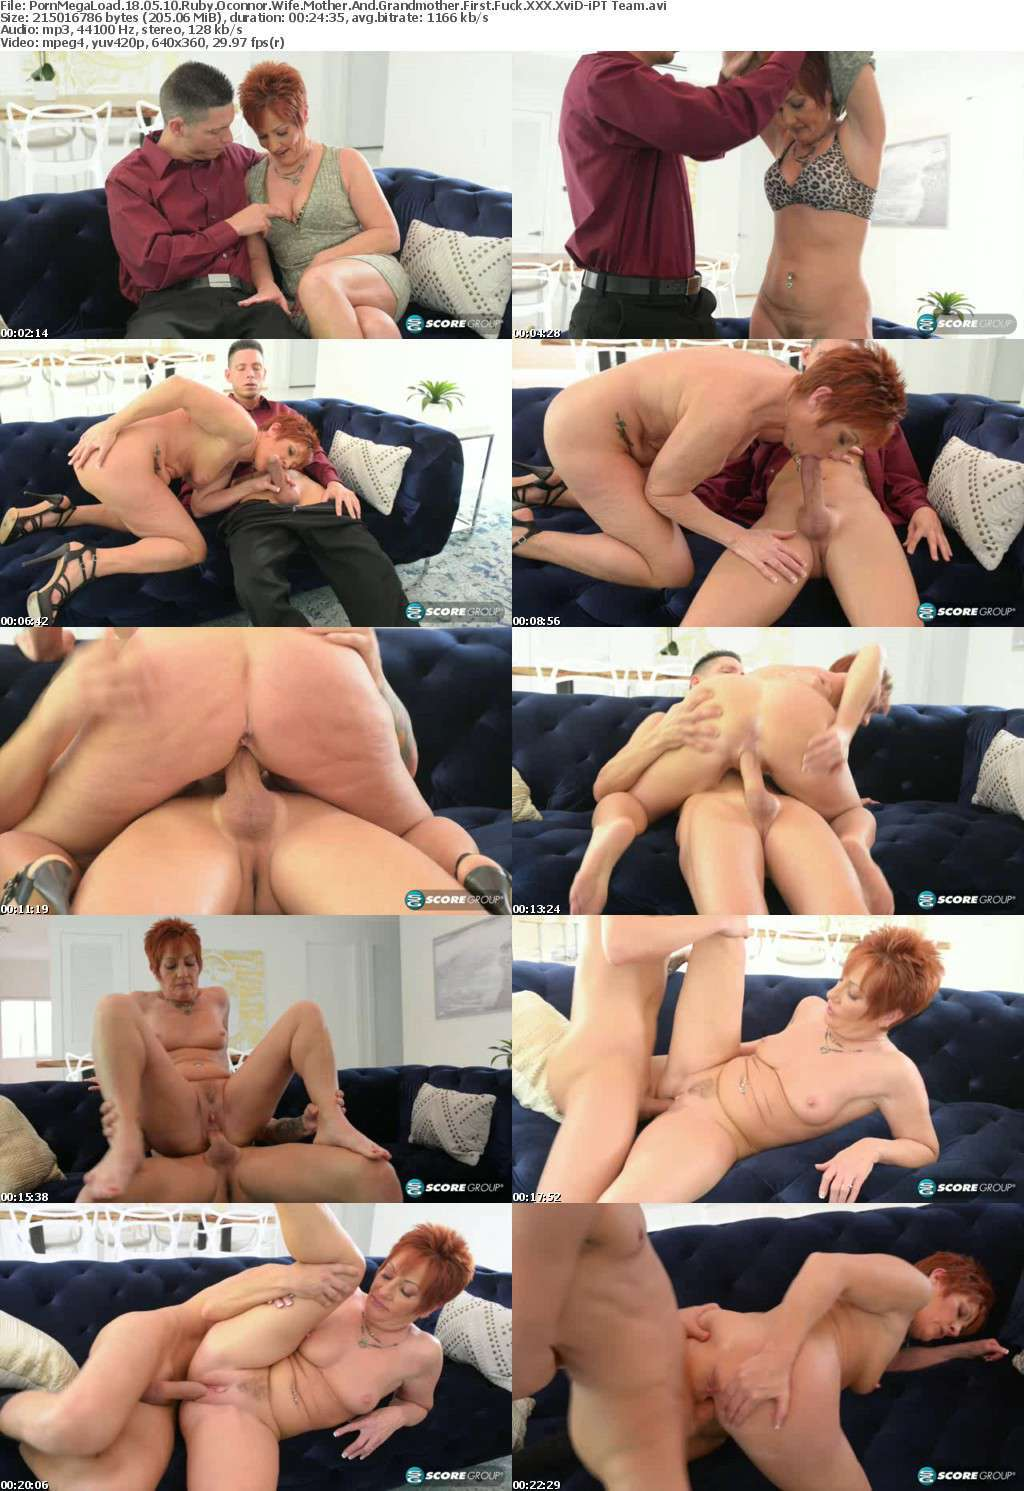 PornMegaLoad 18 05 10 Ruby Oconnor Wife Mother And Grandmother First Fuck XXX